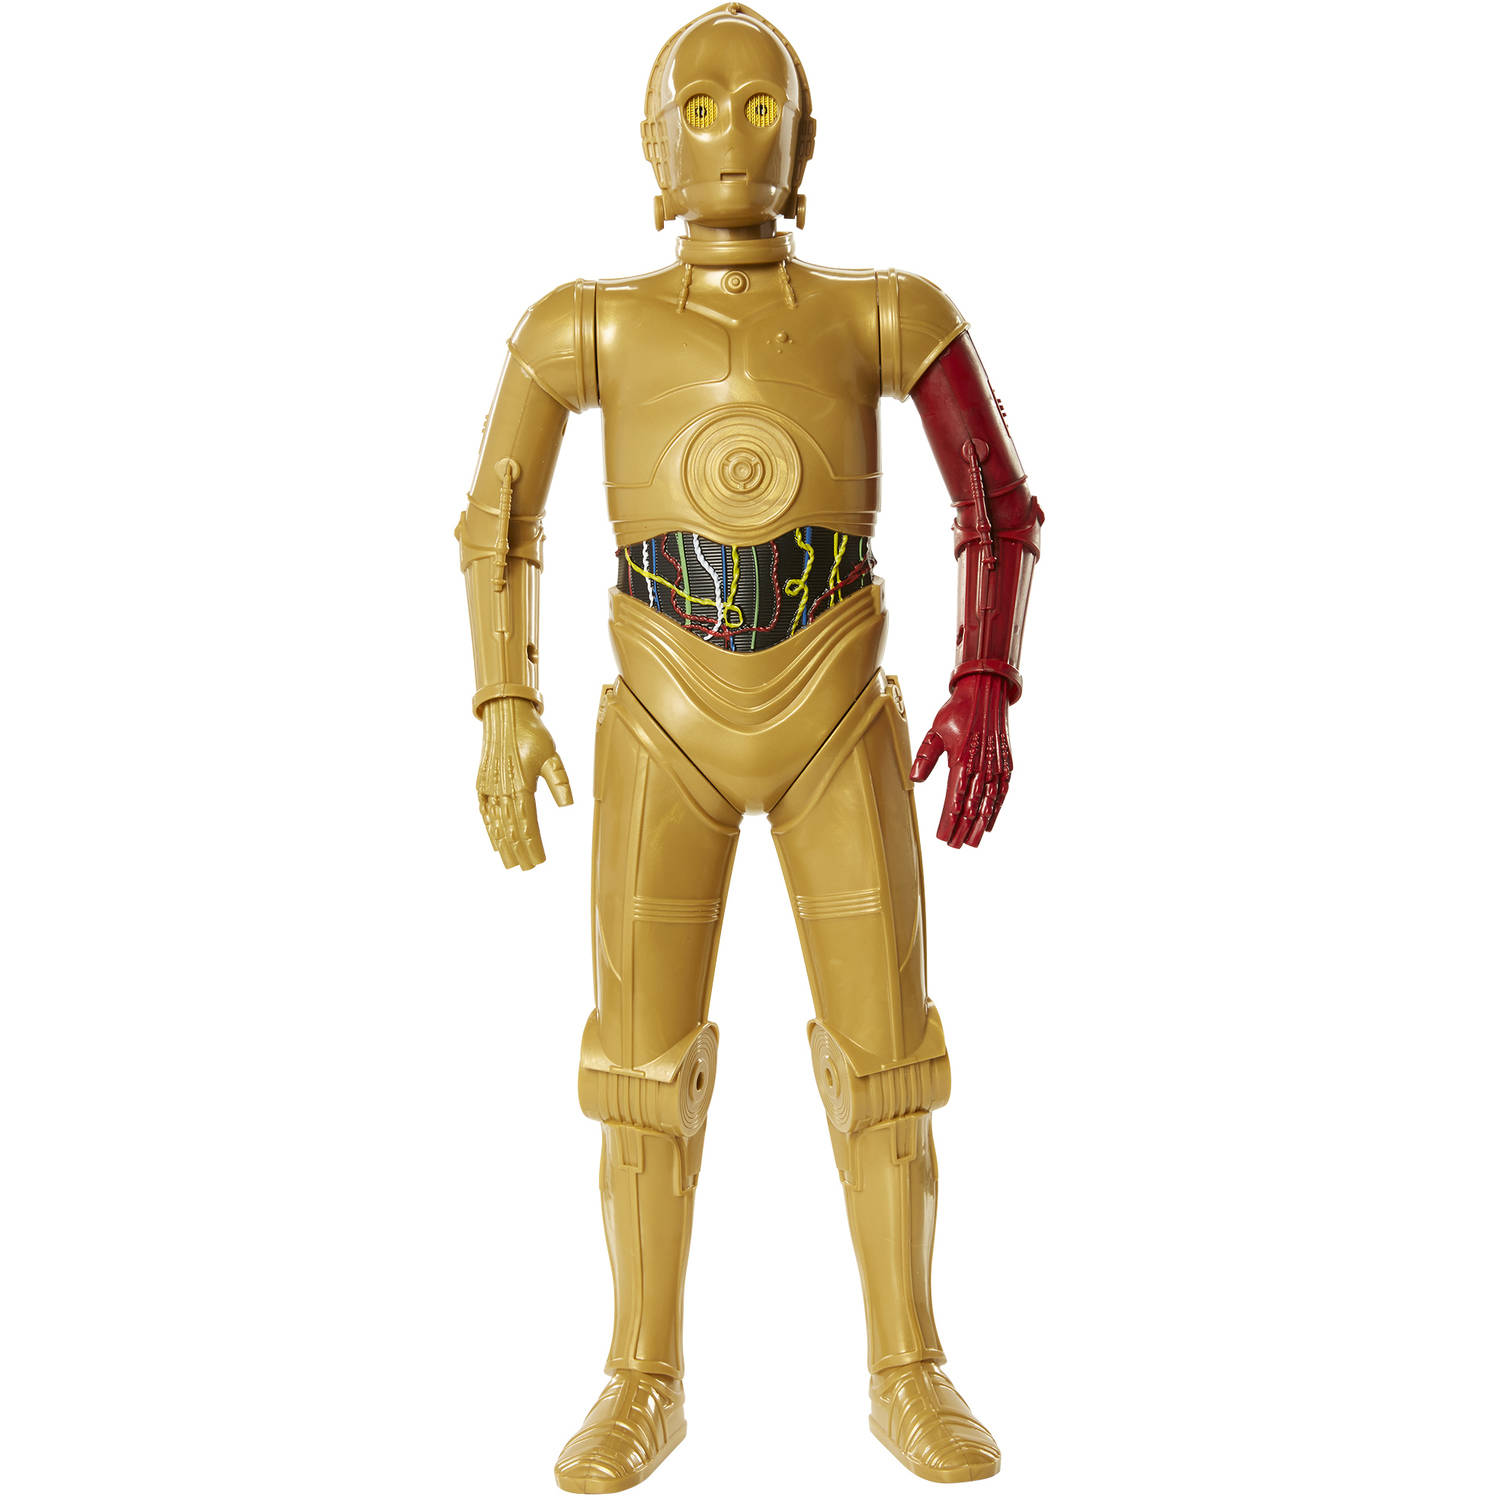 Star Wars C-3PO with Red Arm Action Figure 18""